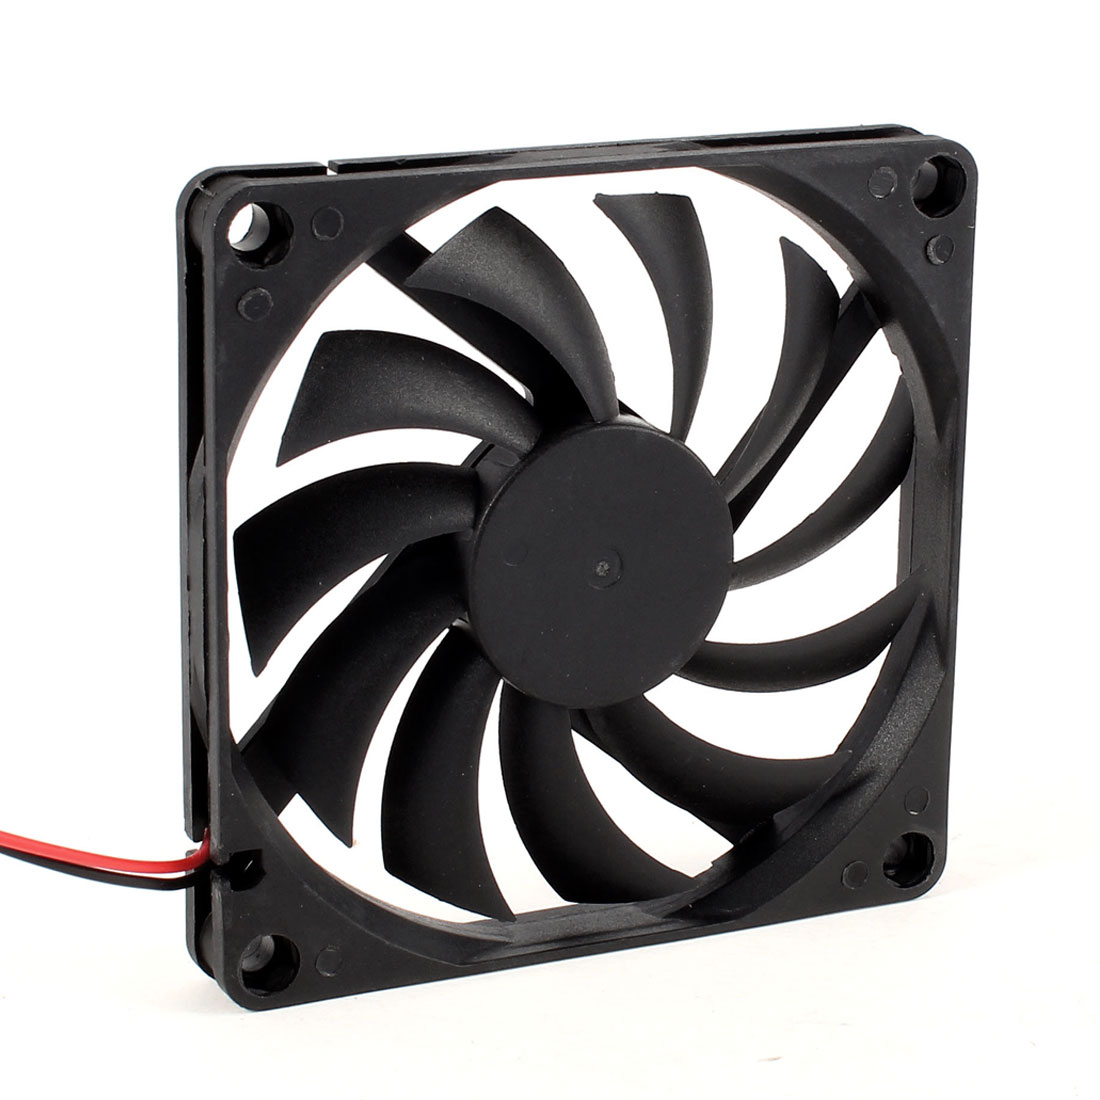 DC 12V IDE Connector PC Computer Brushless Cooling Fan 80x80x10mm